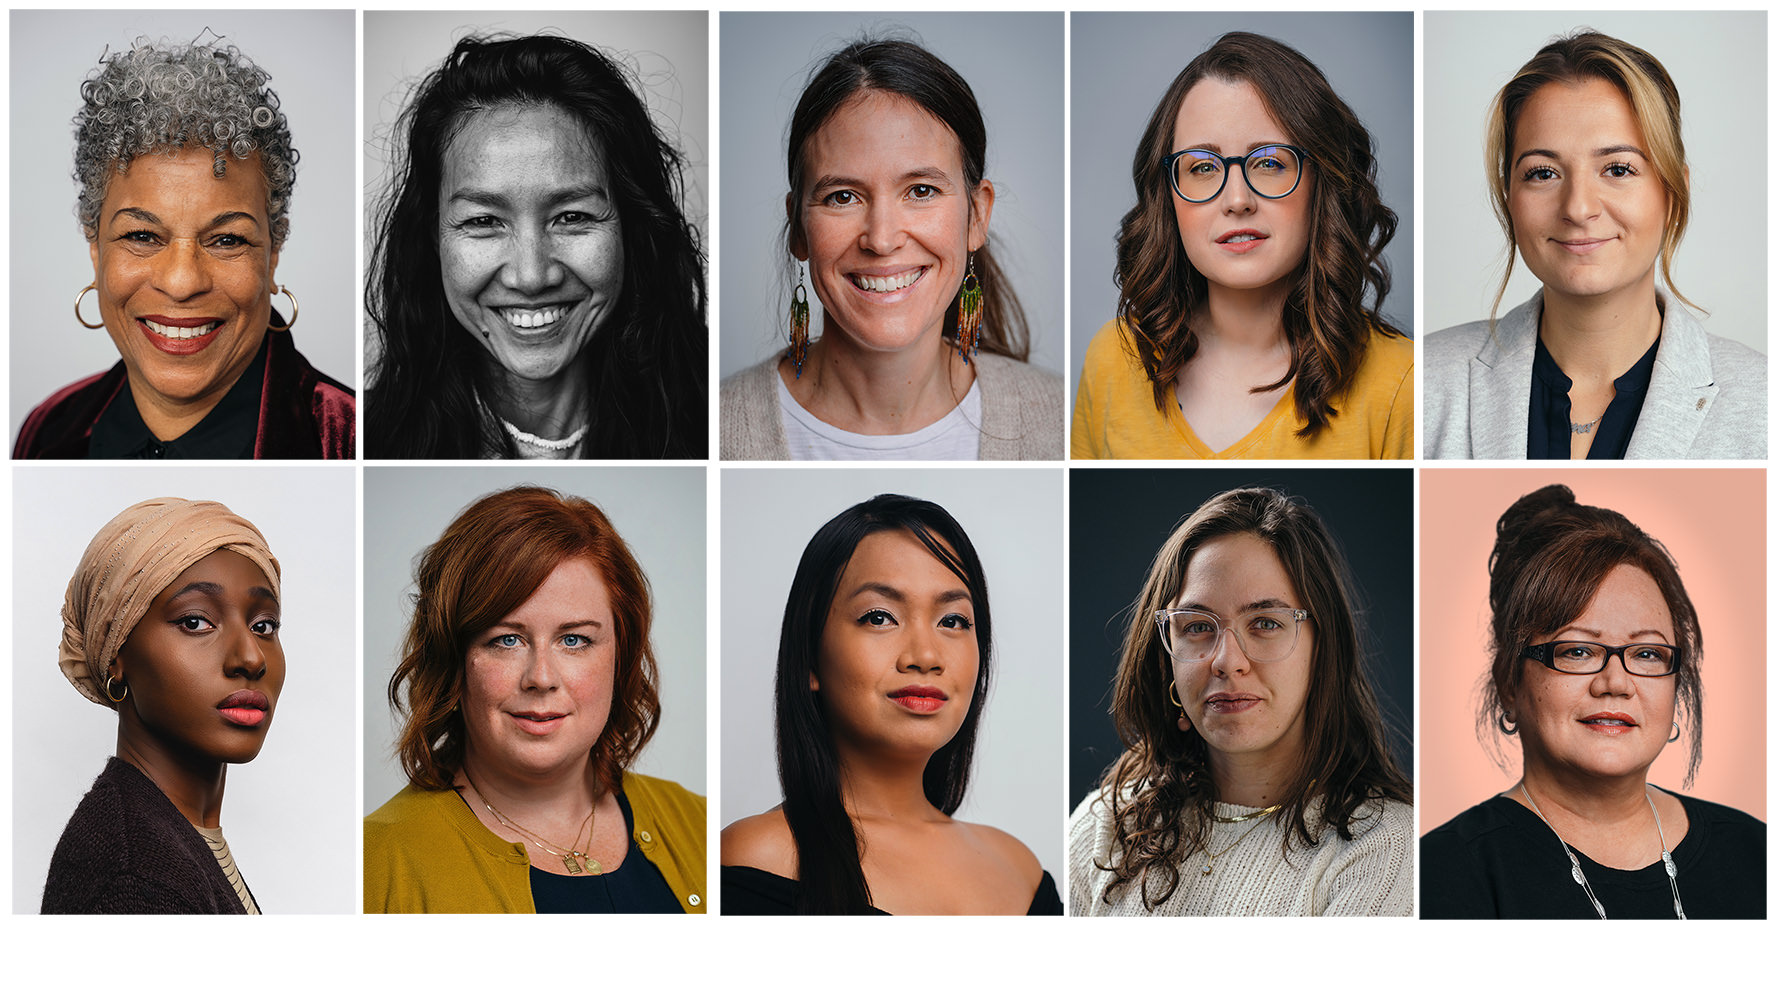 10 Tips On How To Look Better In Business Headshots And Portraits